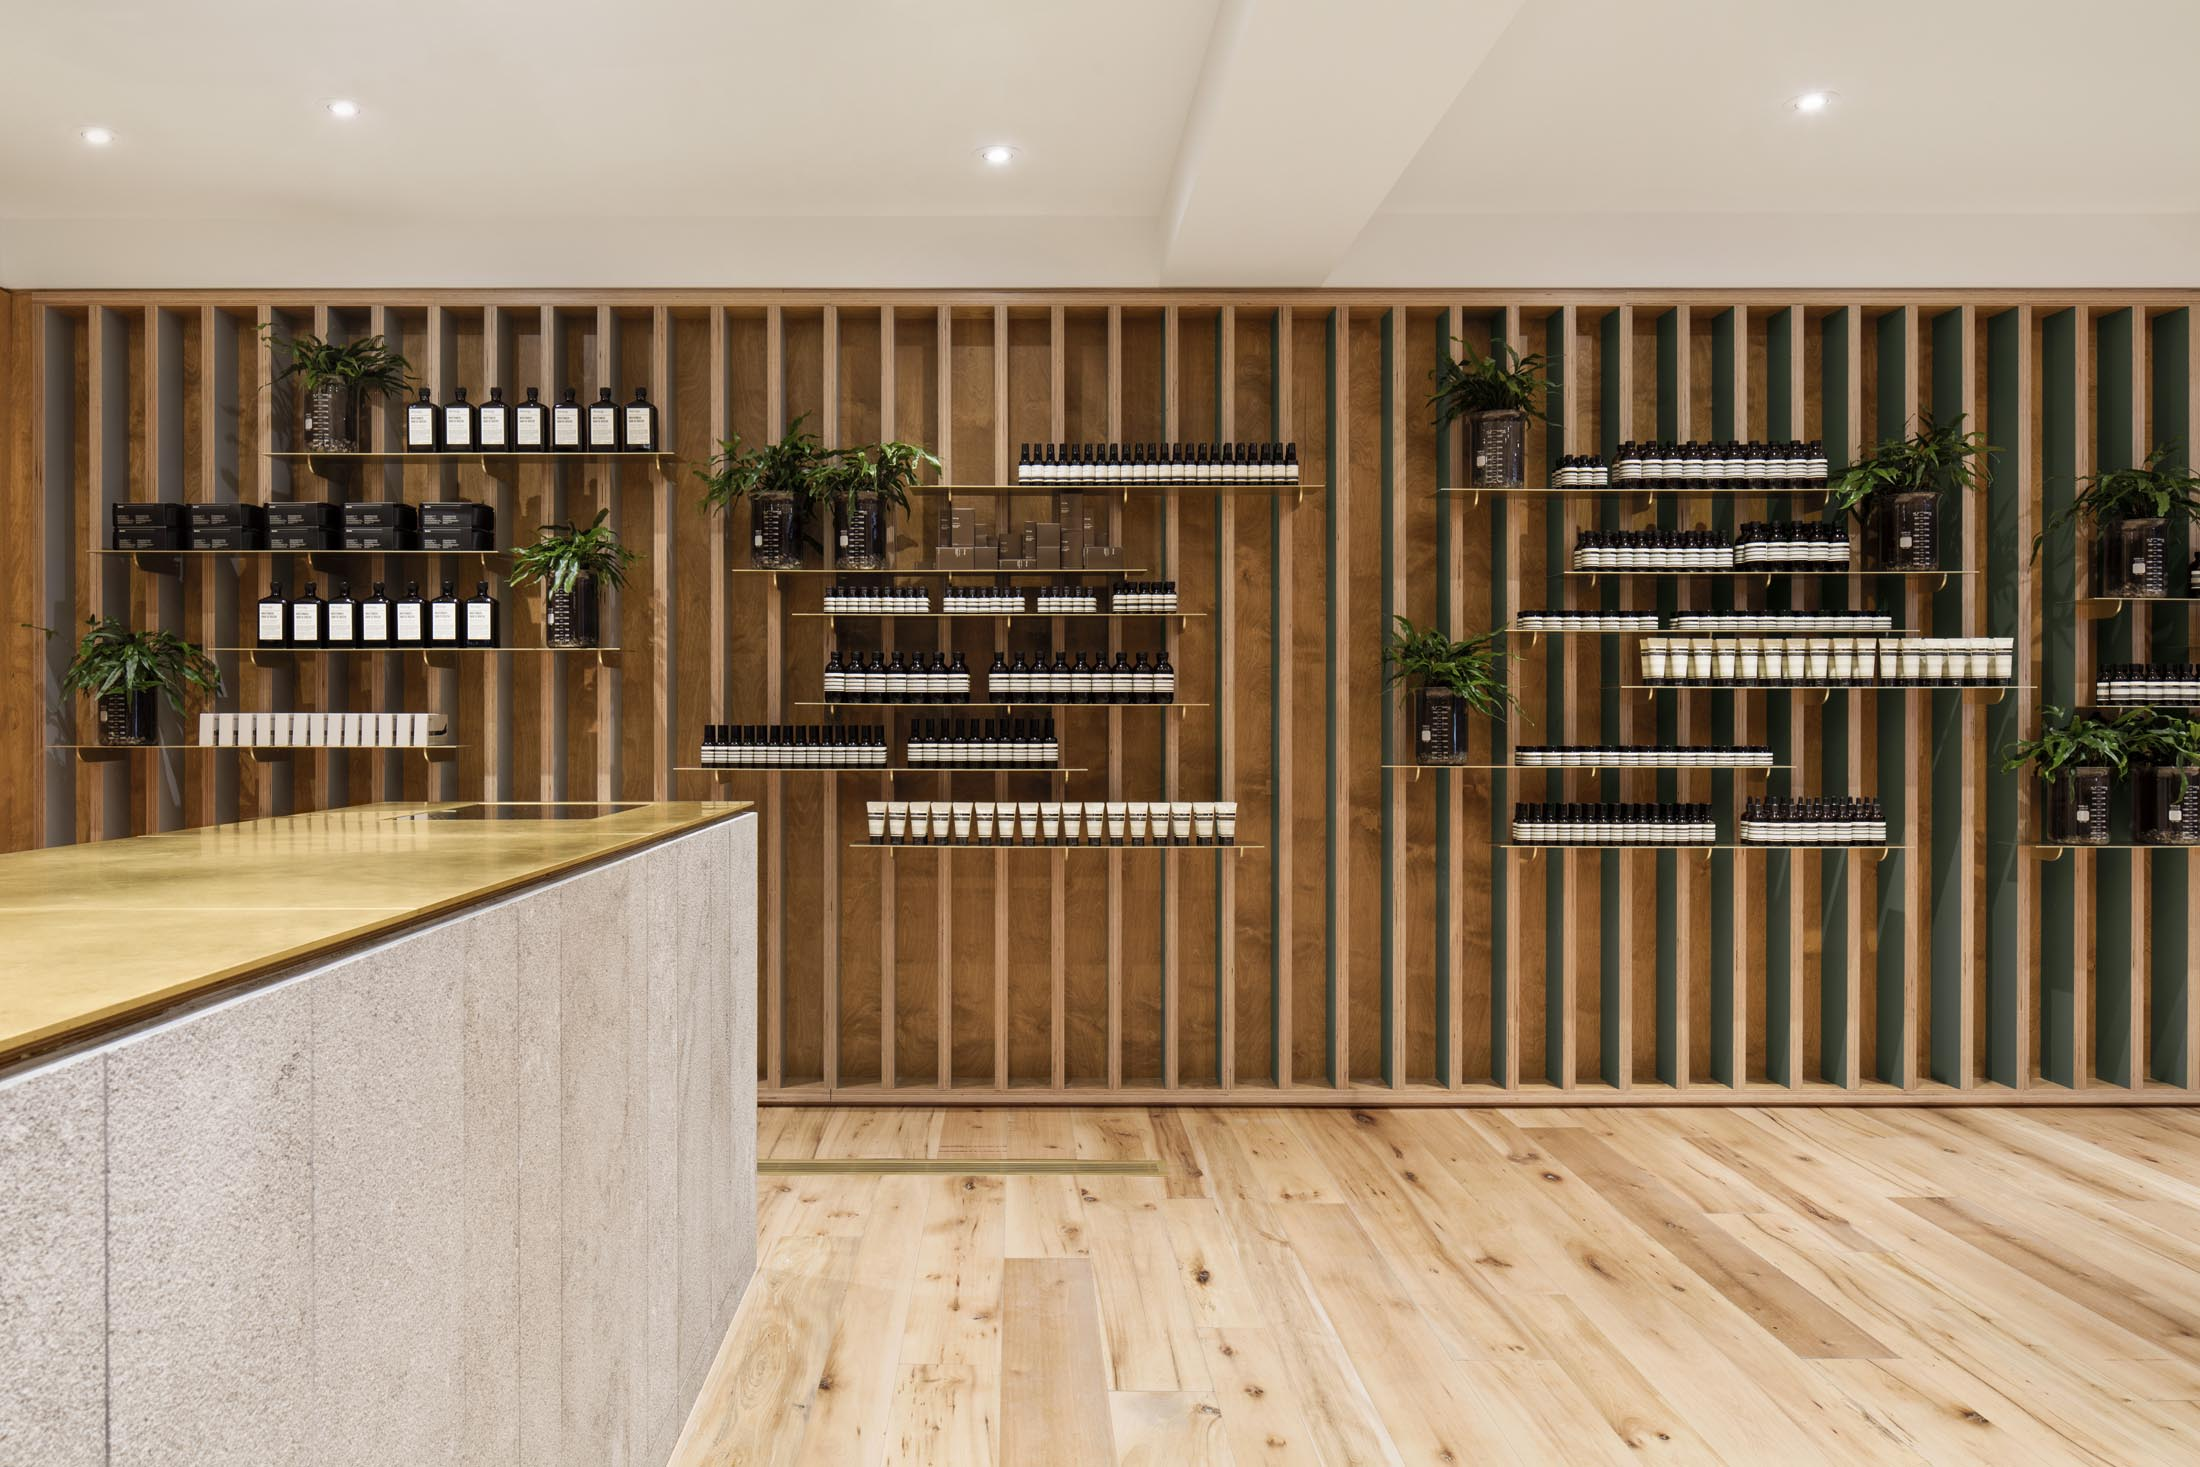 Aesop Mile End Naturehumaine Interiors Inside Ideas Interiors design about Everything [magnanprojects.com]